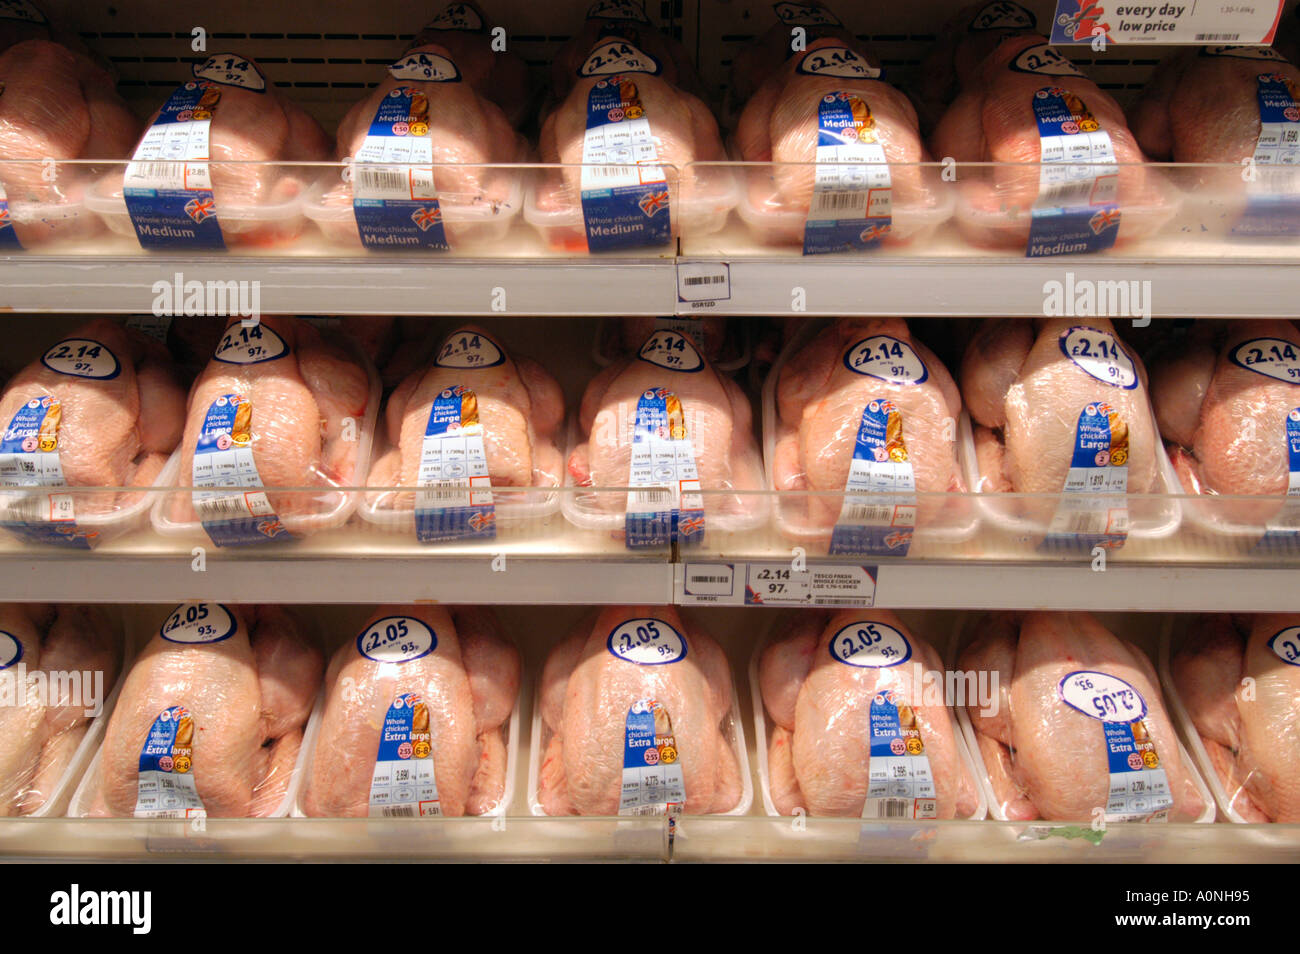 Rows of chickens in Tesco Extra superstore England UK - Stock Image